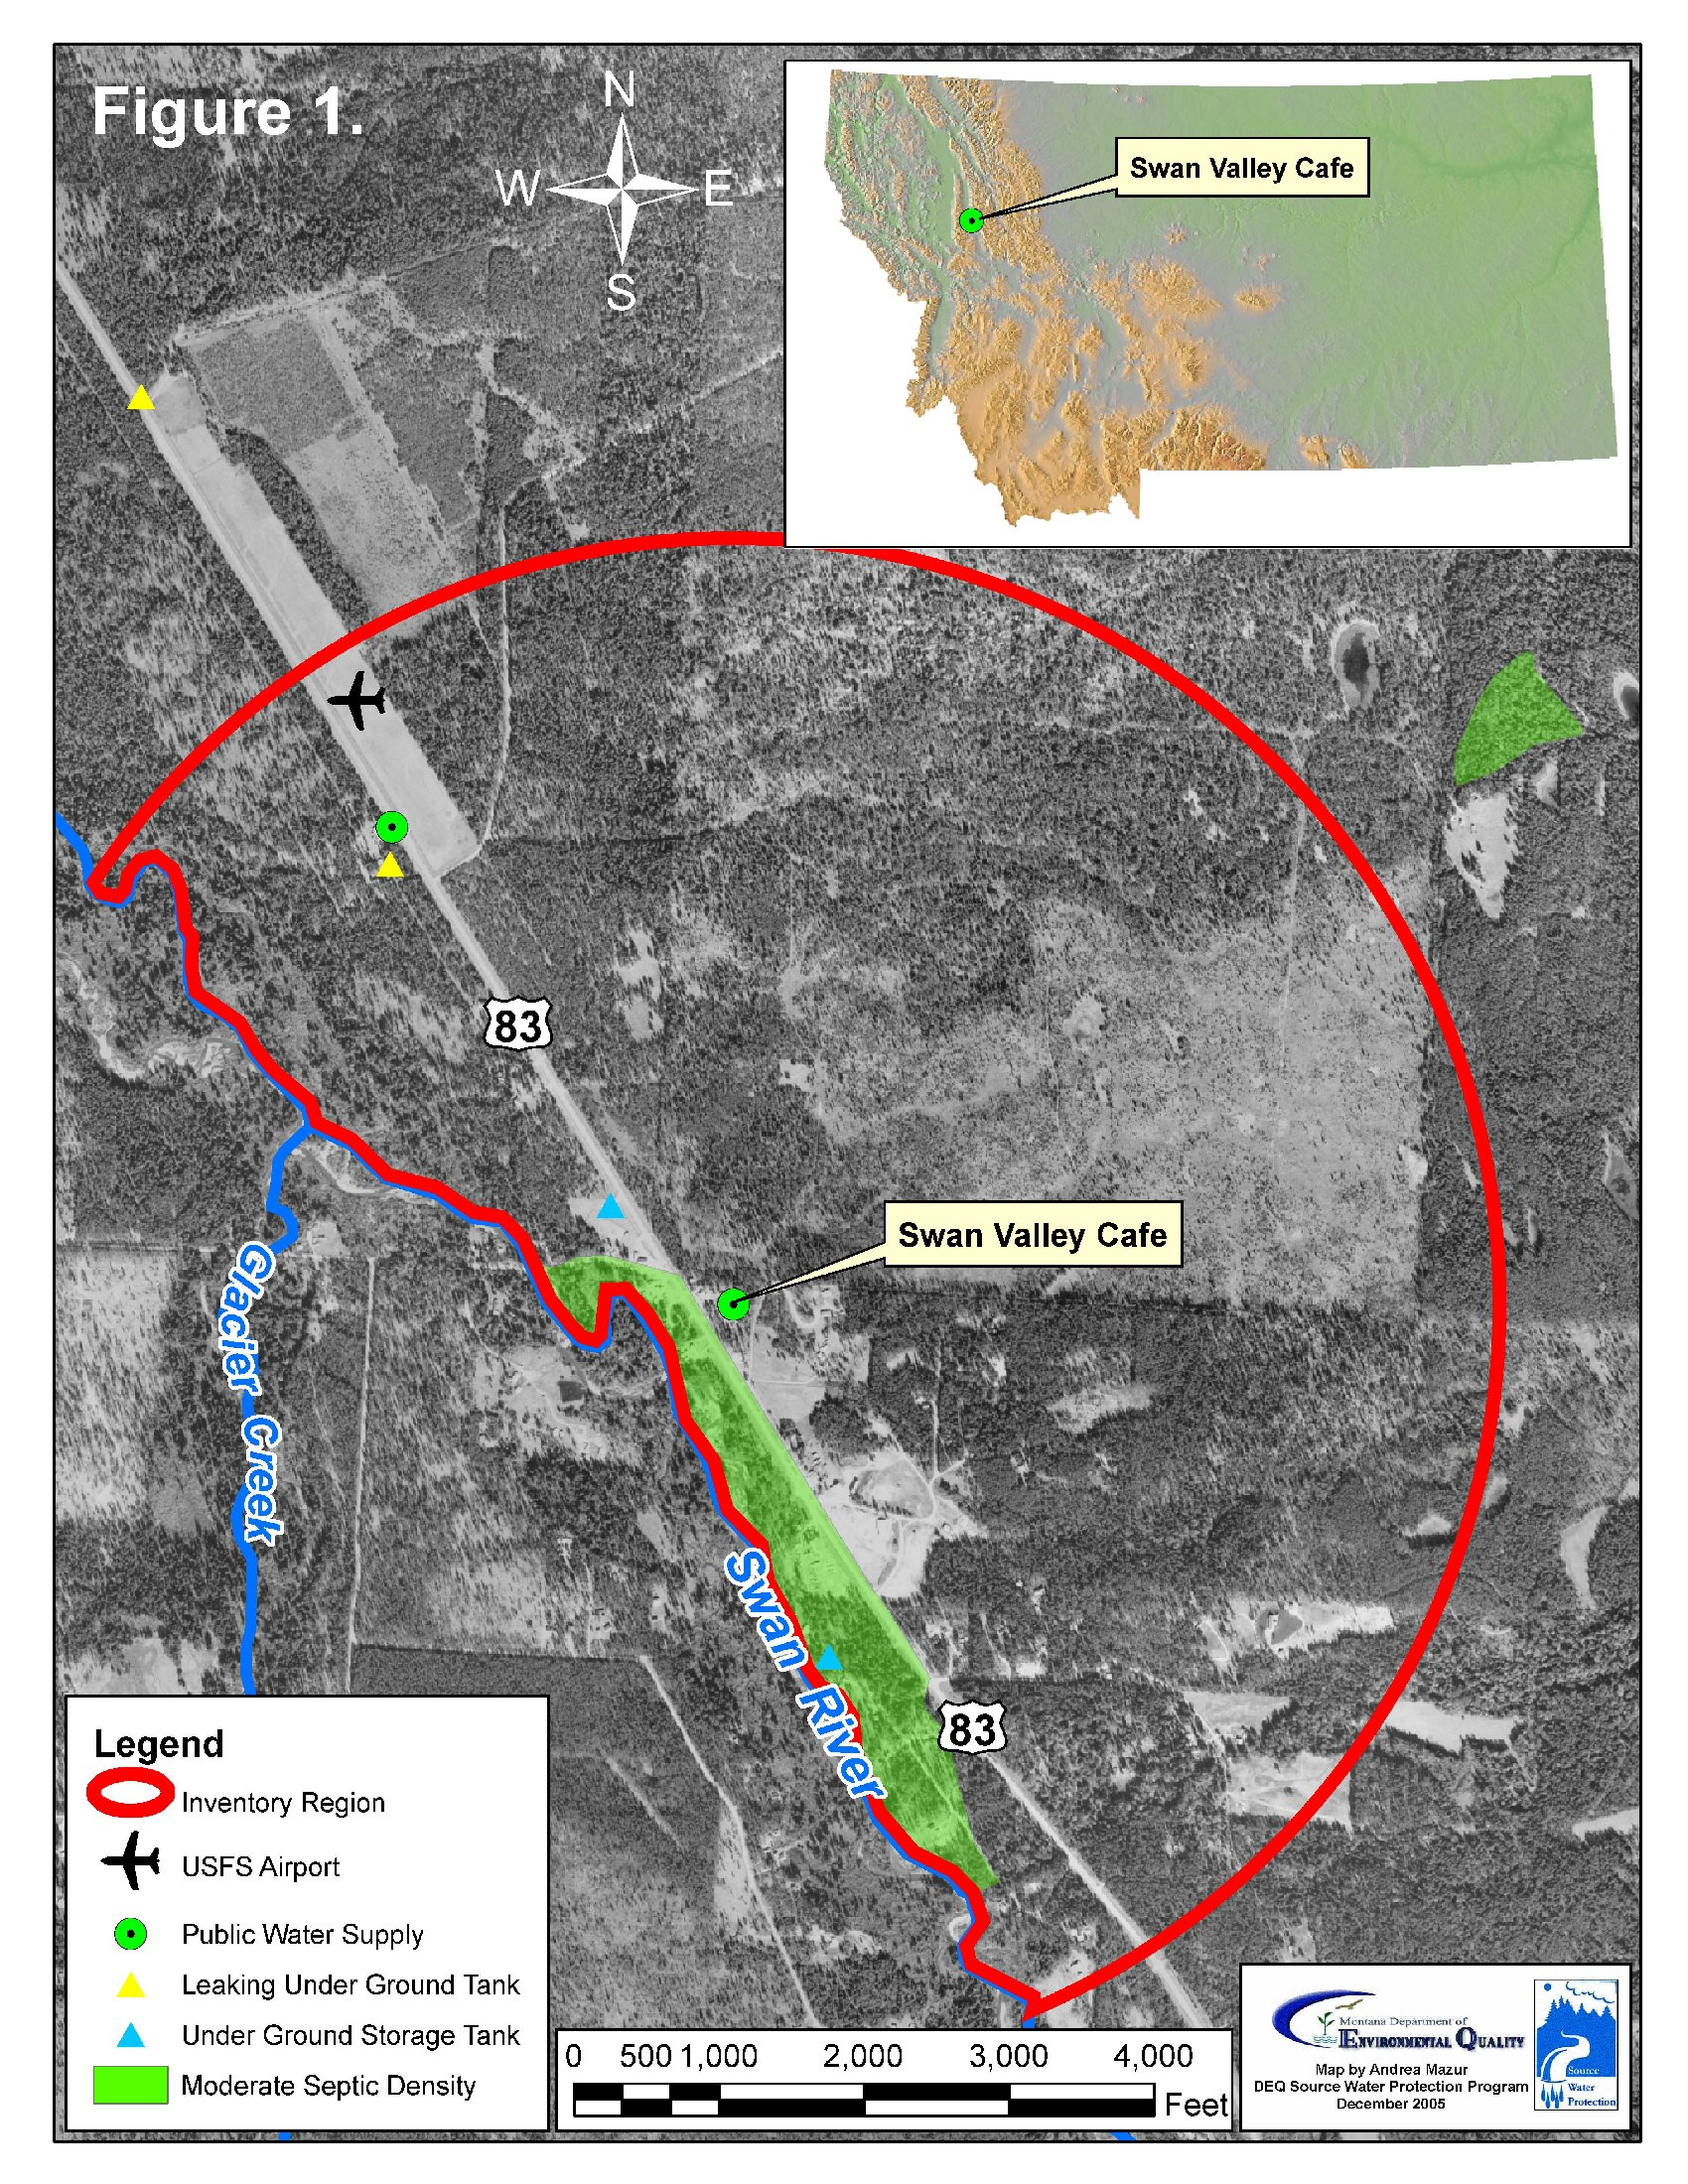 Swan Valley Montana Map.Swan Valley Cafe Source Water Delineation And Assessment Report